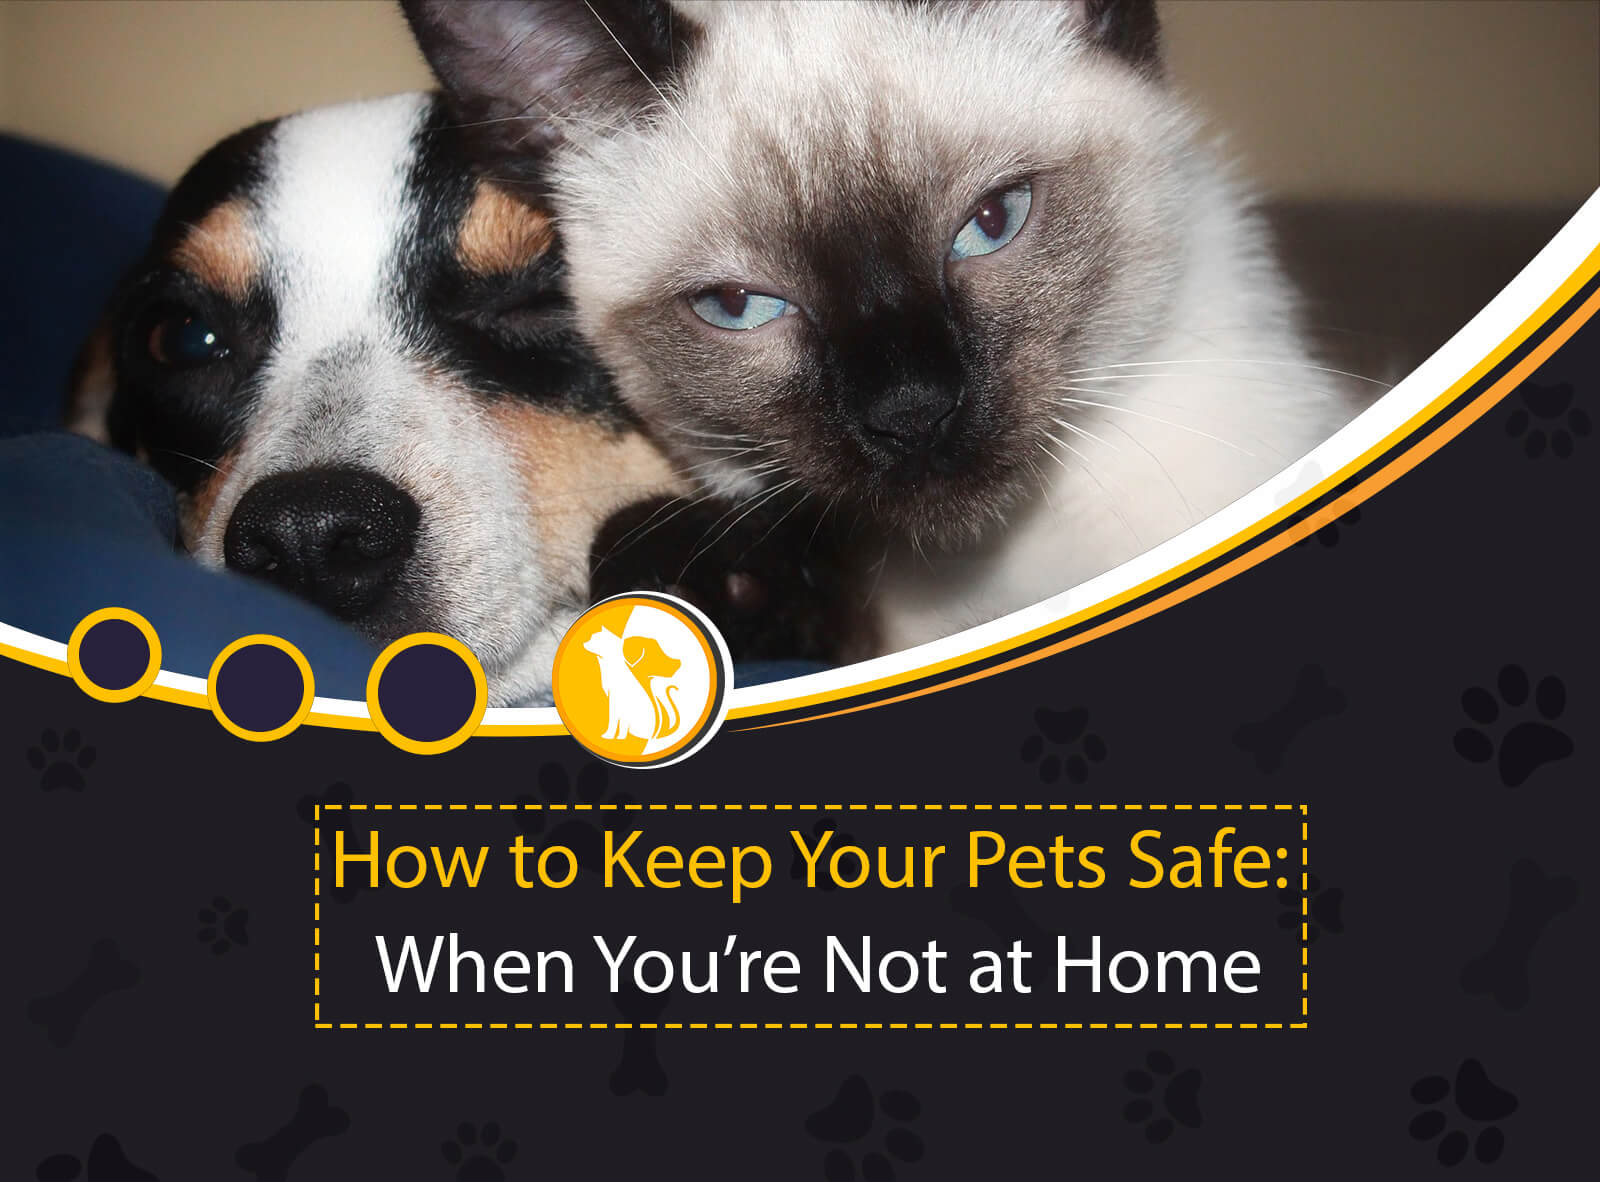 How to Keep Your Pets Safe: When You're Not at Home